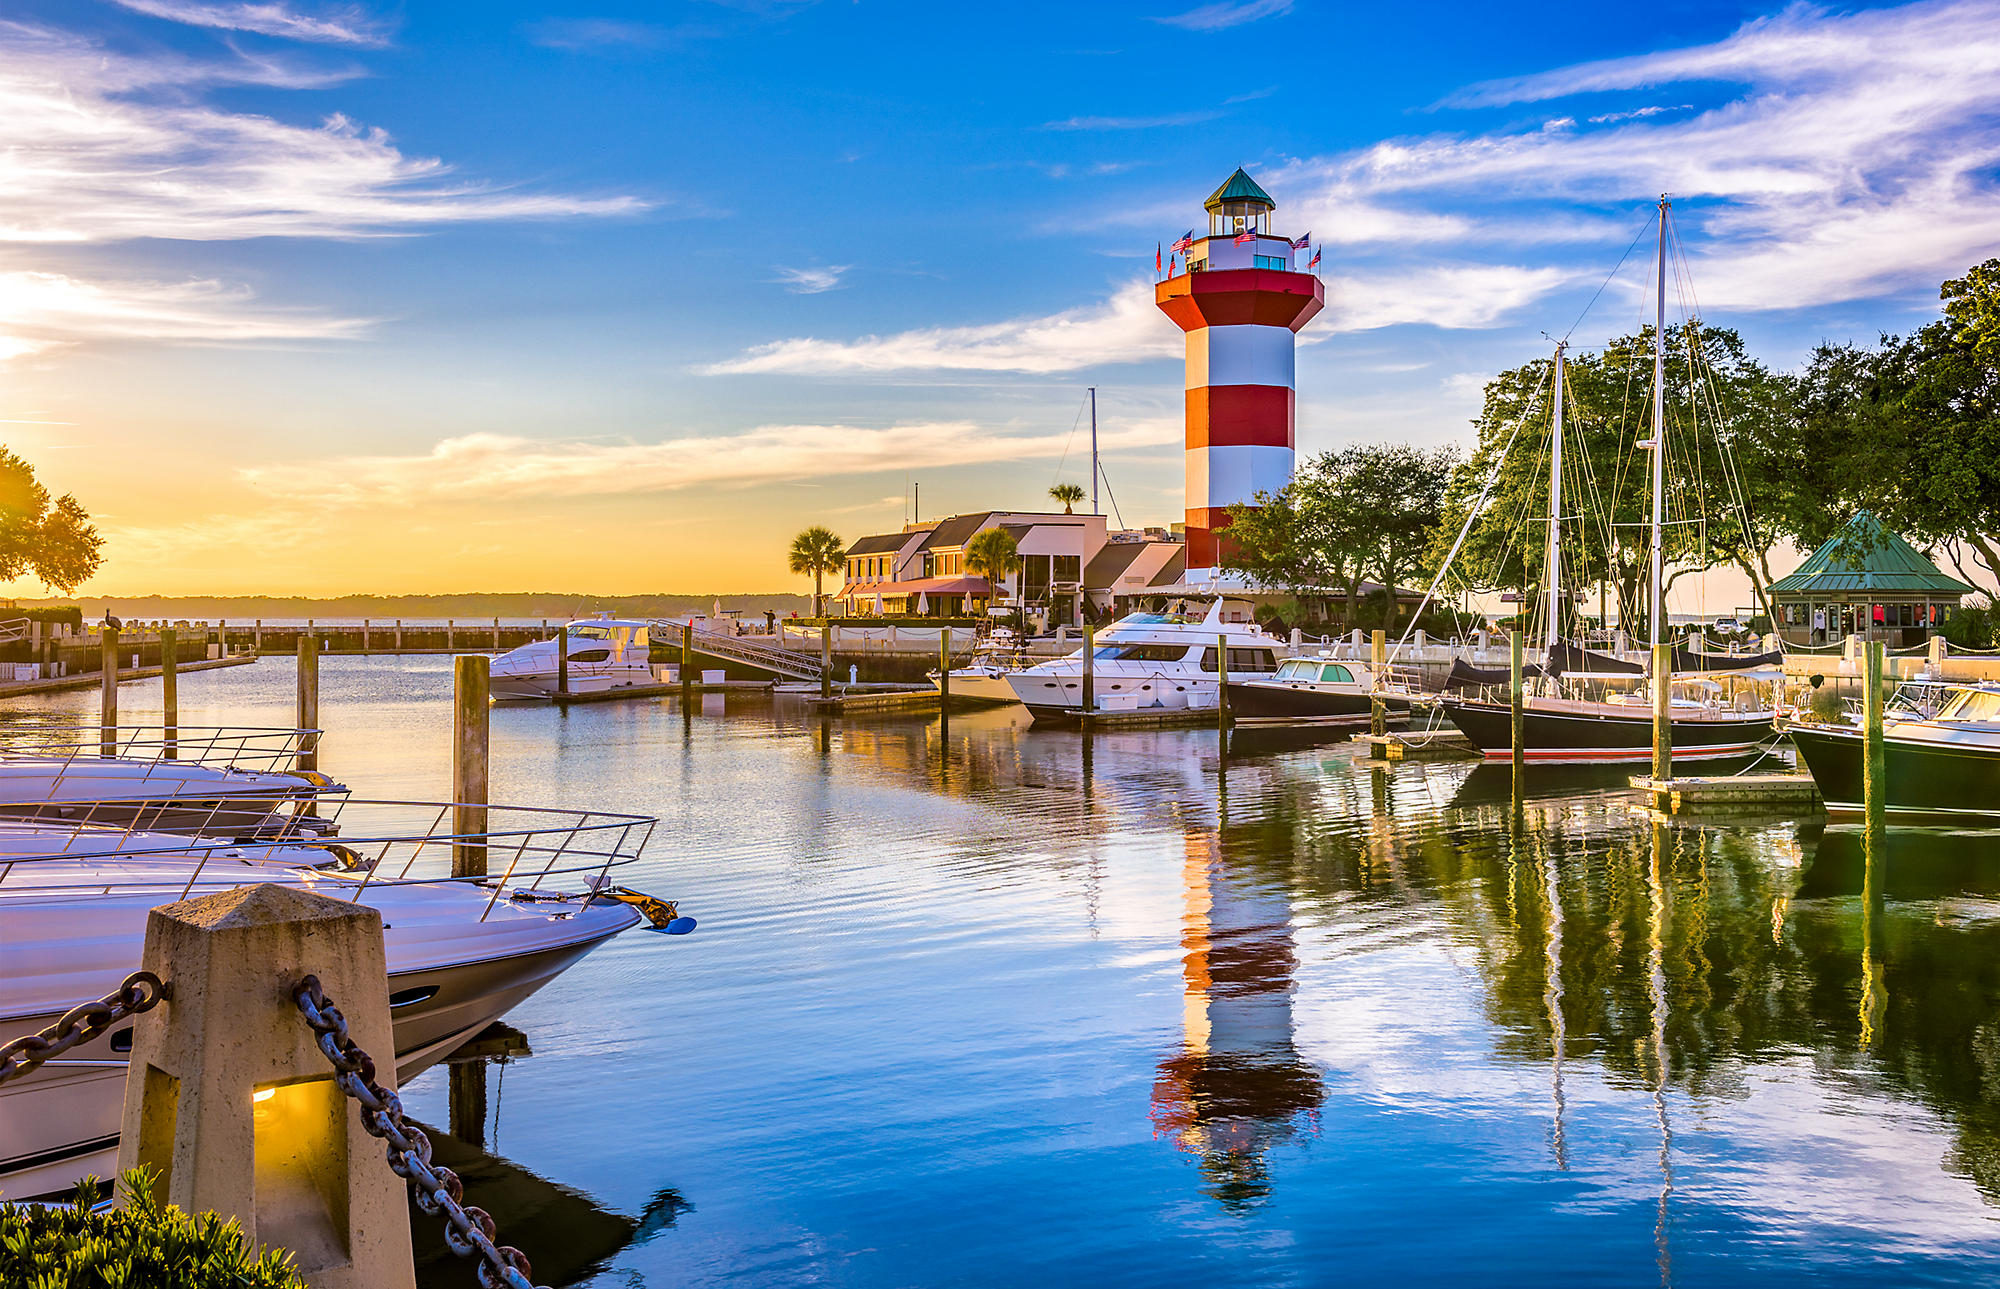 Hilton Head island with a view of the light house.